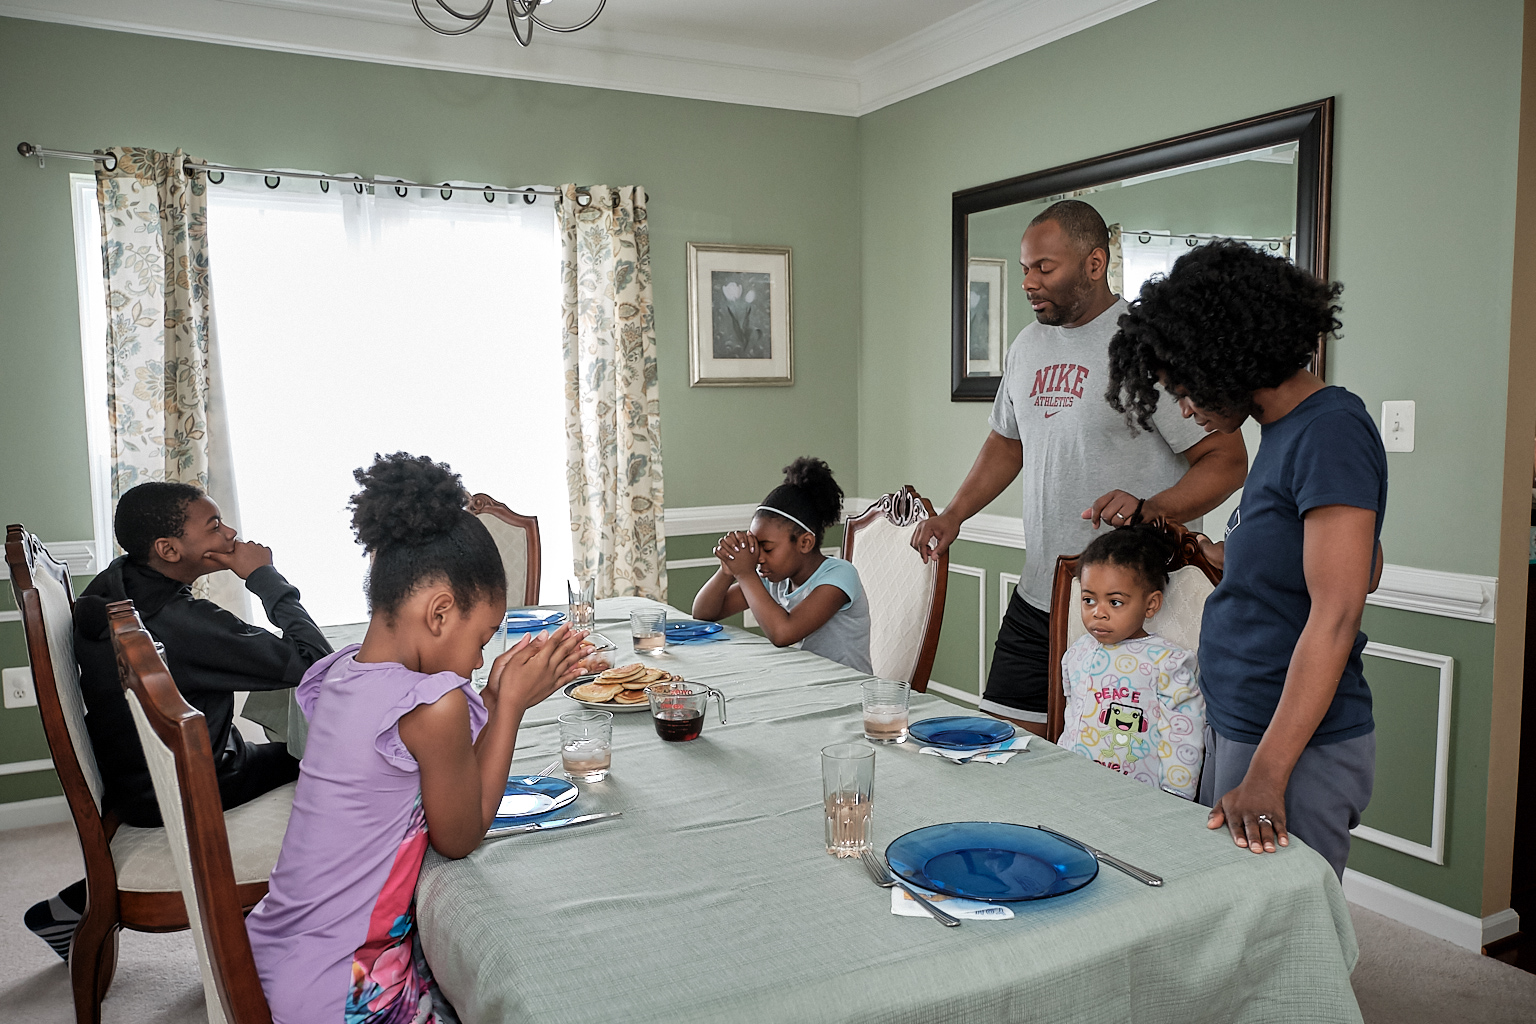 Lenzy_Ruffin_Photograph_Family_Lifestye_2019-04-20-074.jpg